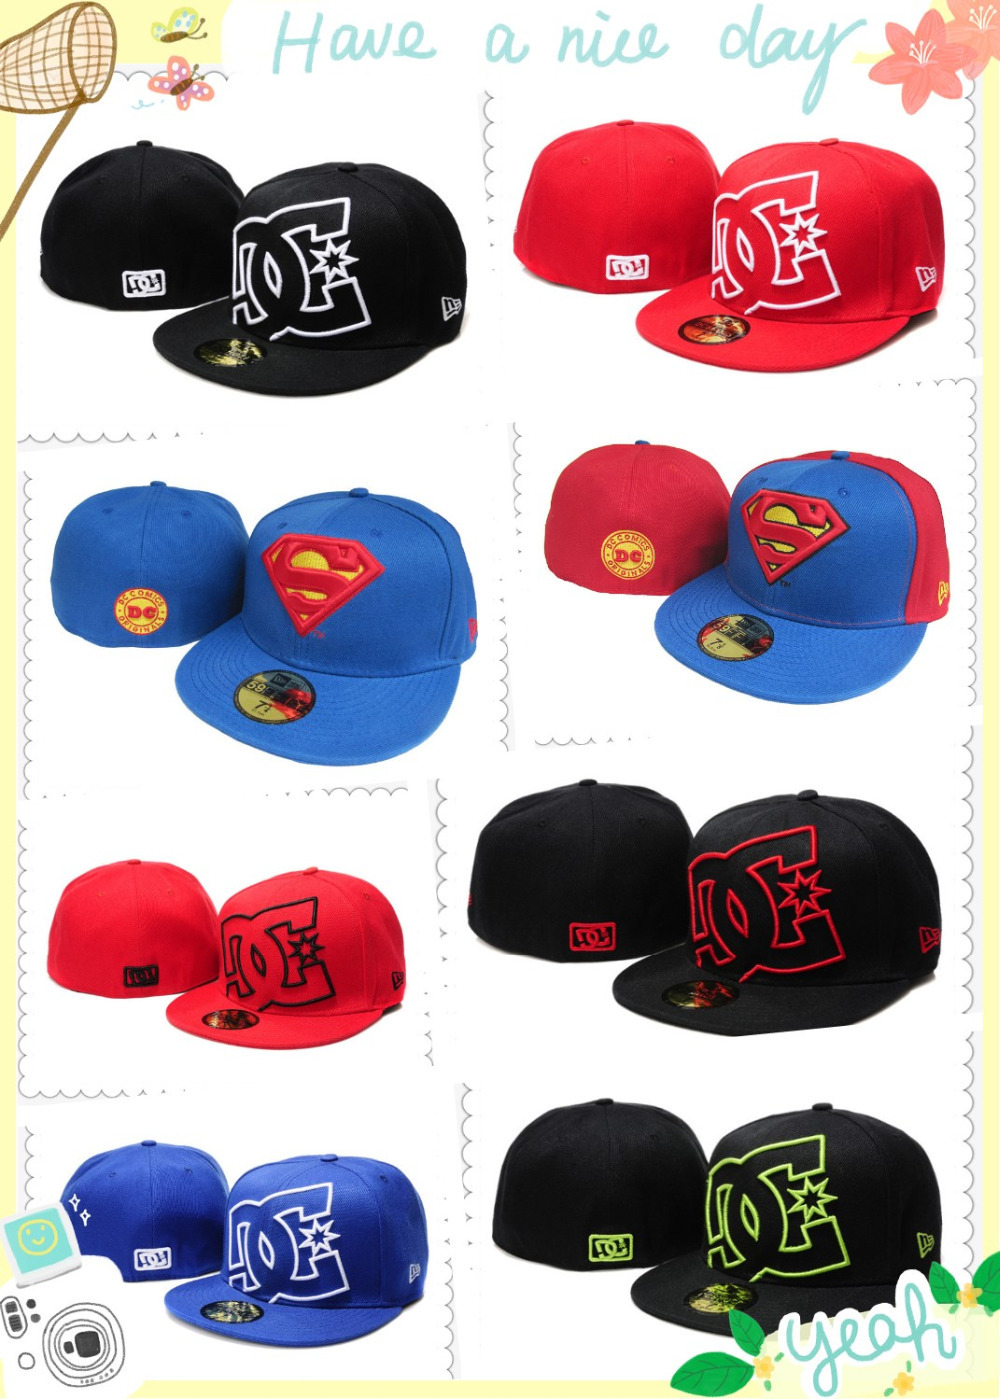 Free shipping! Wholesale Top Quality Original fitted gorras dc hats brand design gorras planas hip hop cap for men and women(China (Mainland))